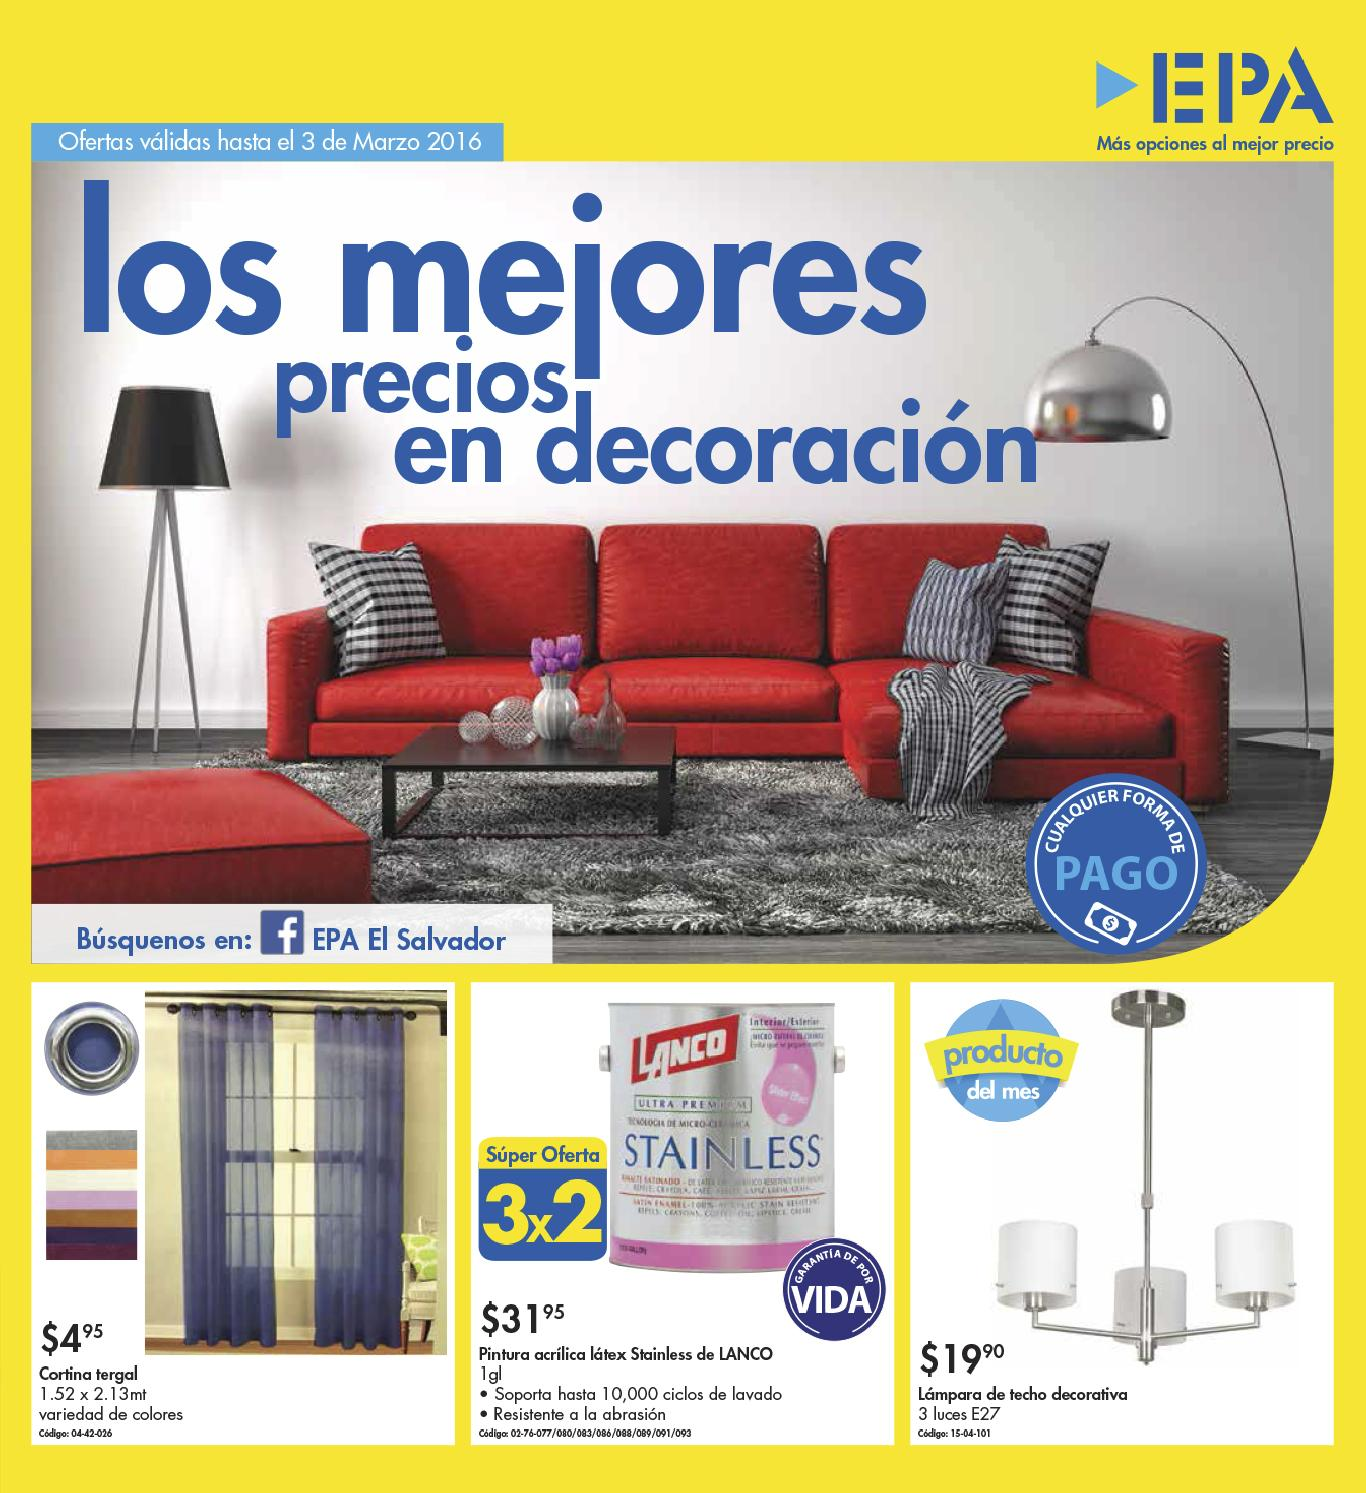 Epa folleto de ofertas en decoracion de interiores for Ofertas decoracion hogar